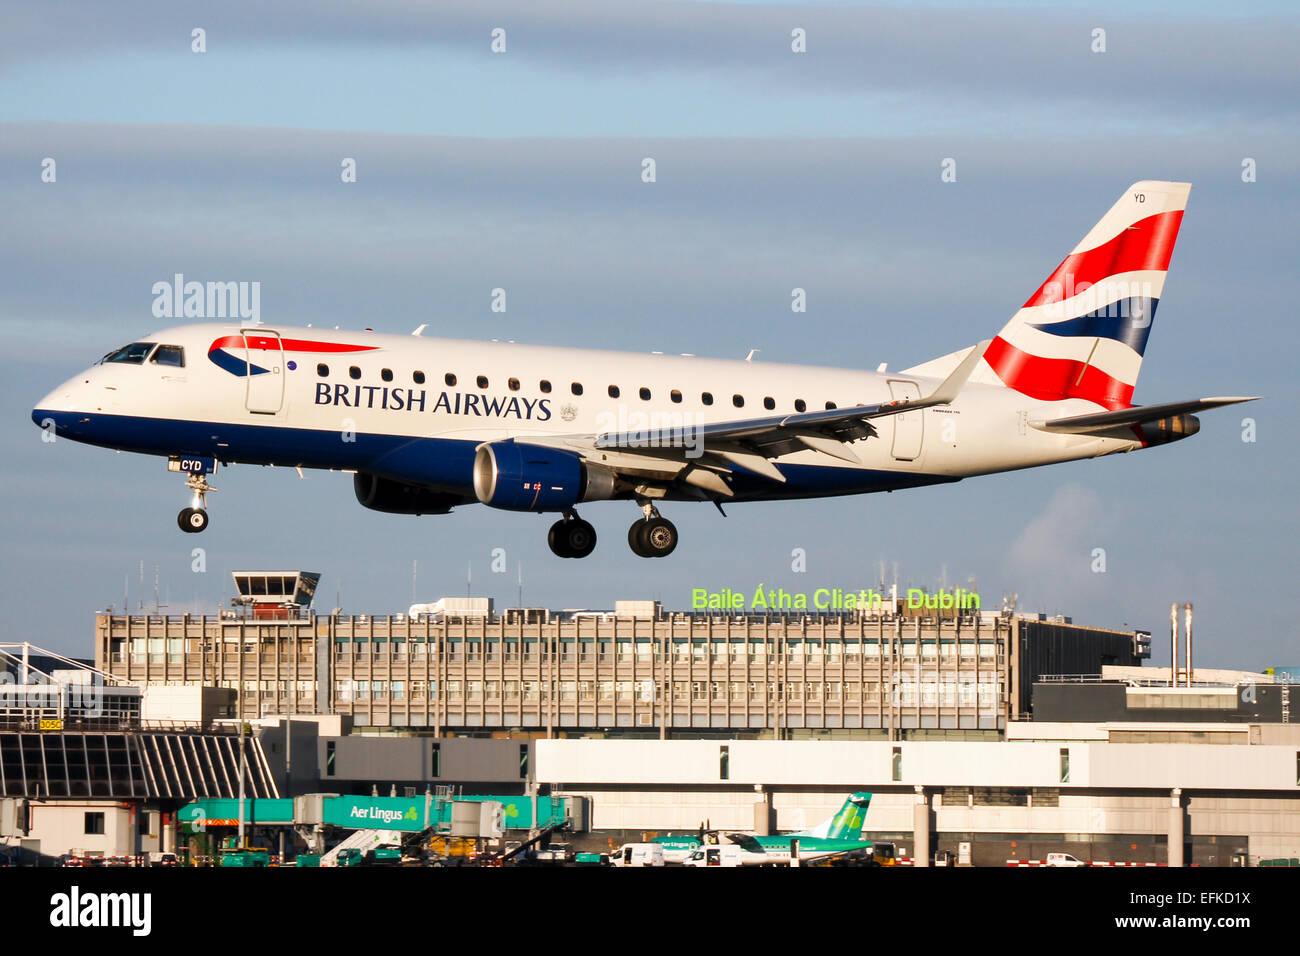 British Airways Embraer 170 approaches runway 28 at Dublin airport. - Stock Image